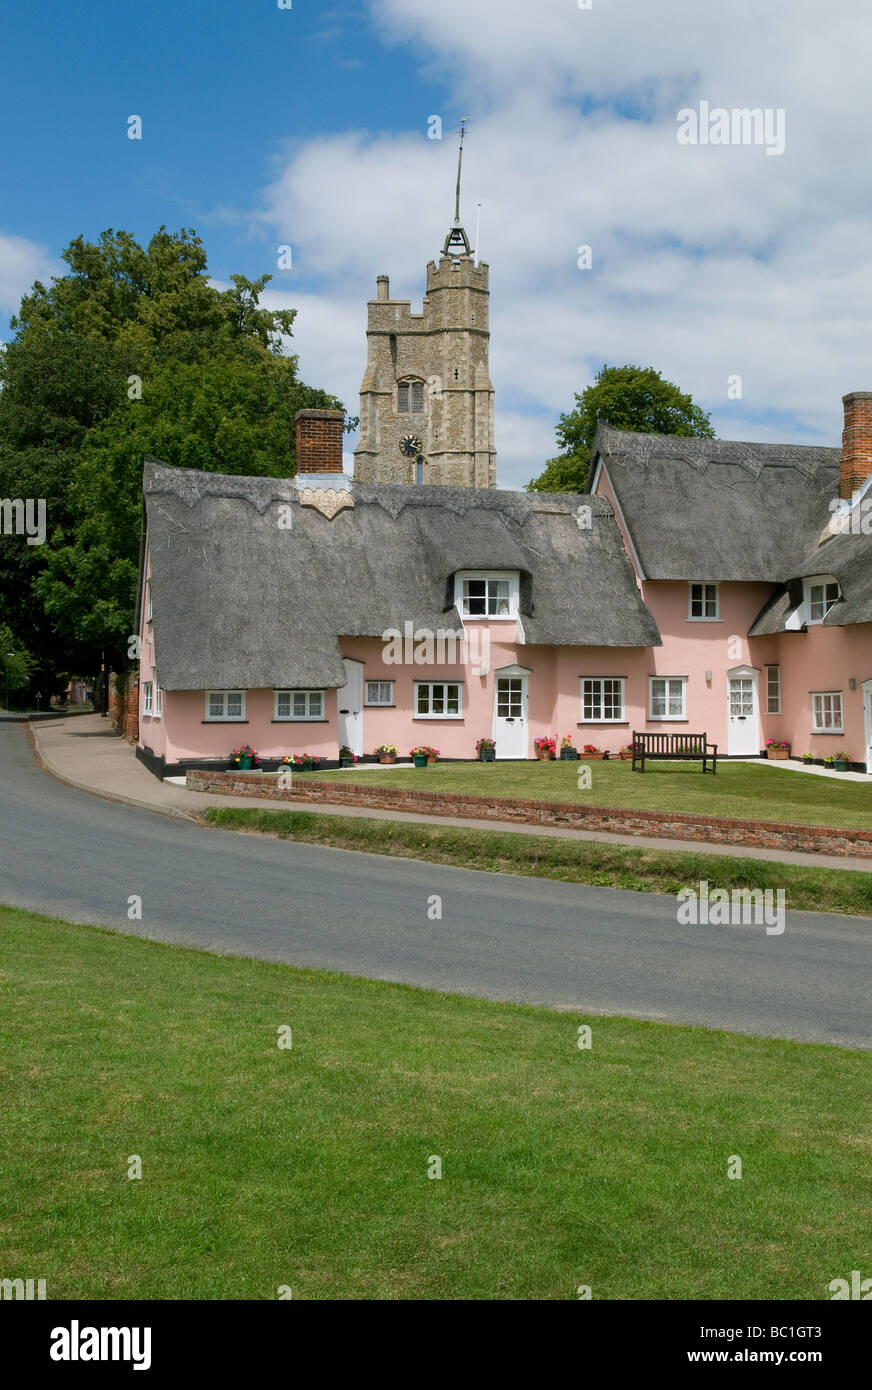 pink thatched cottages, cavendish, suffolk, england - Stock Image